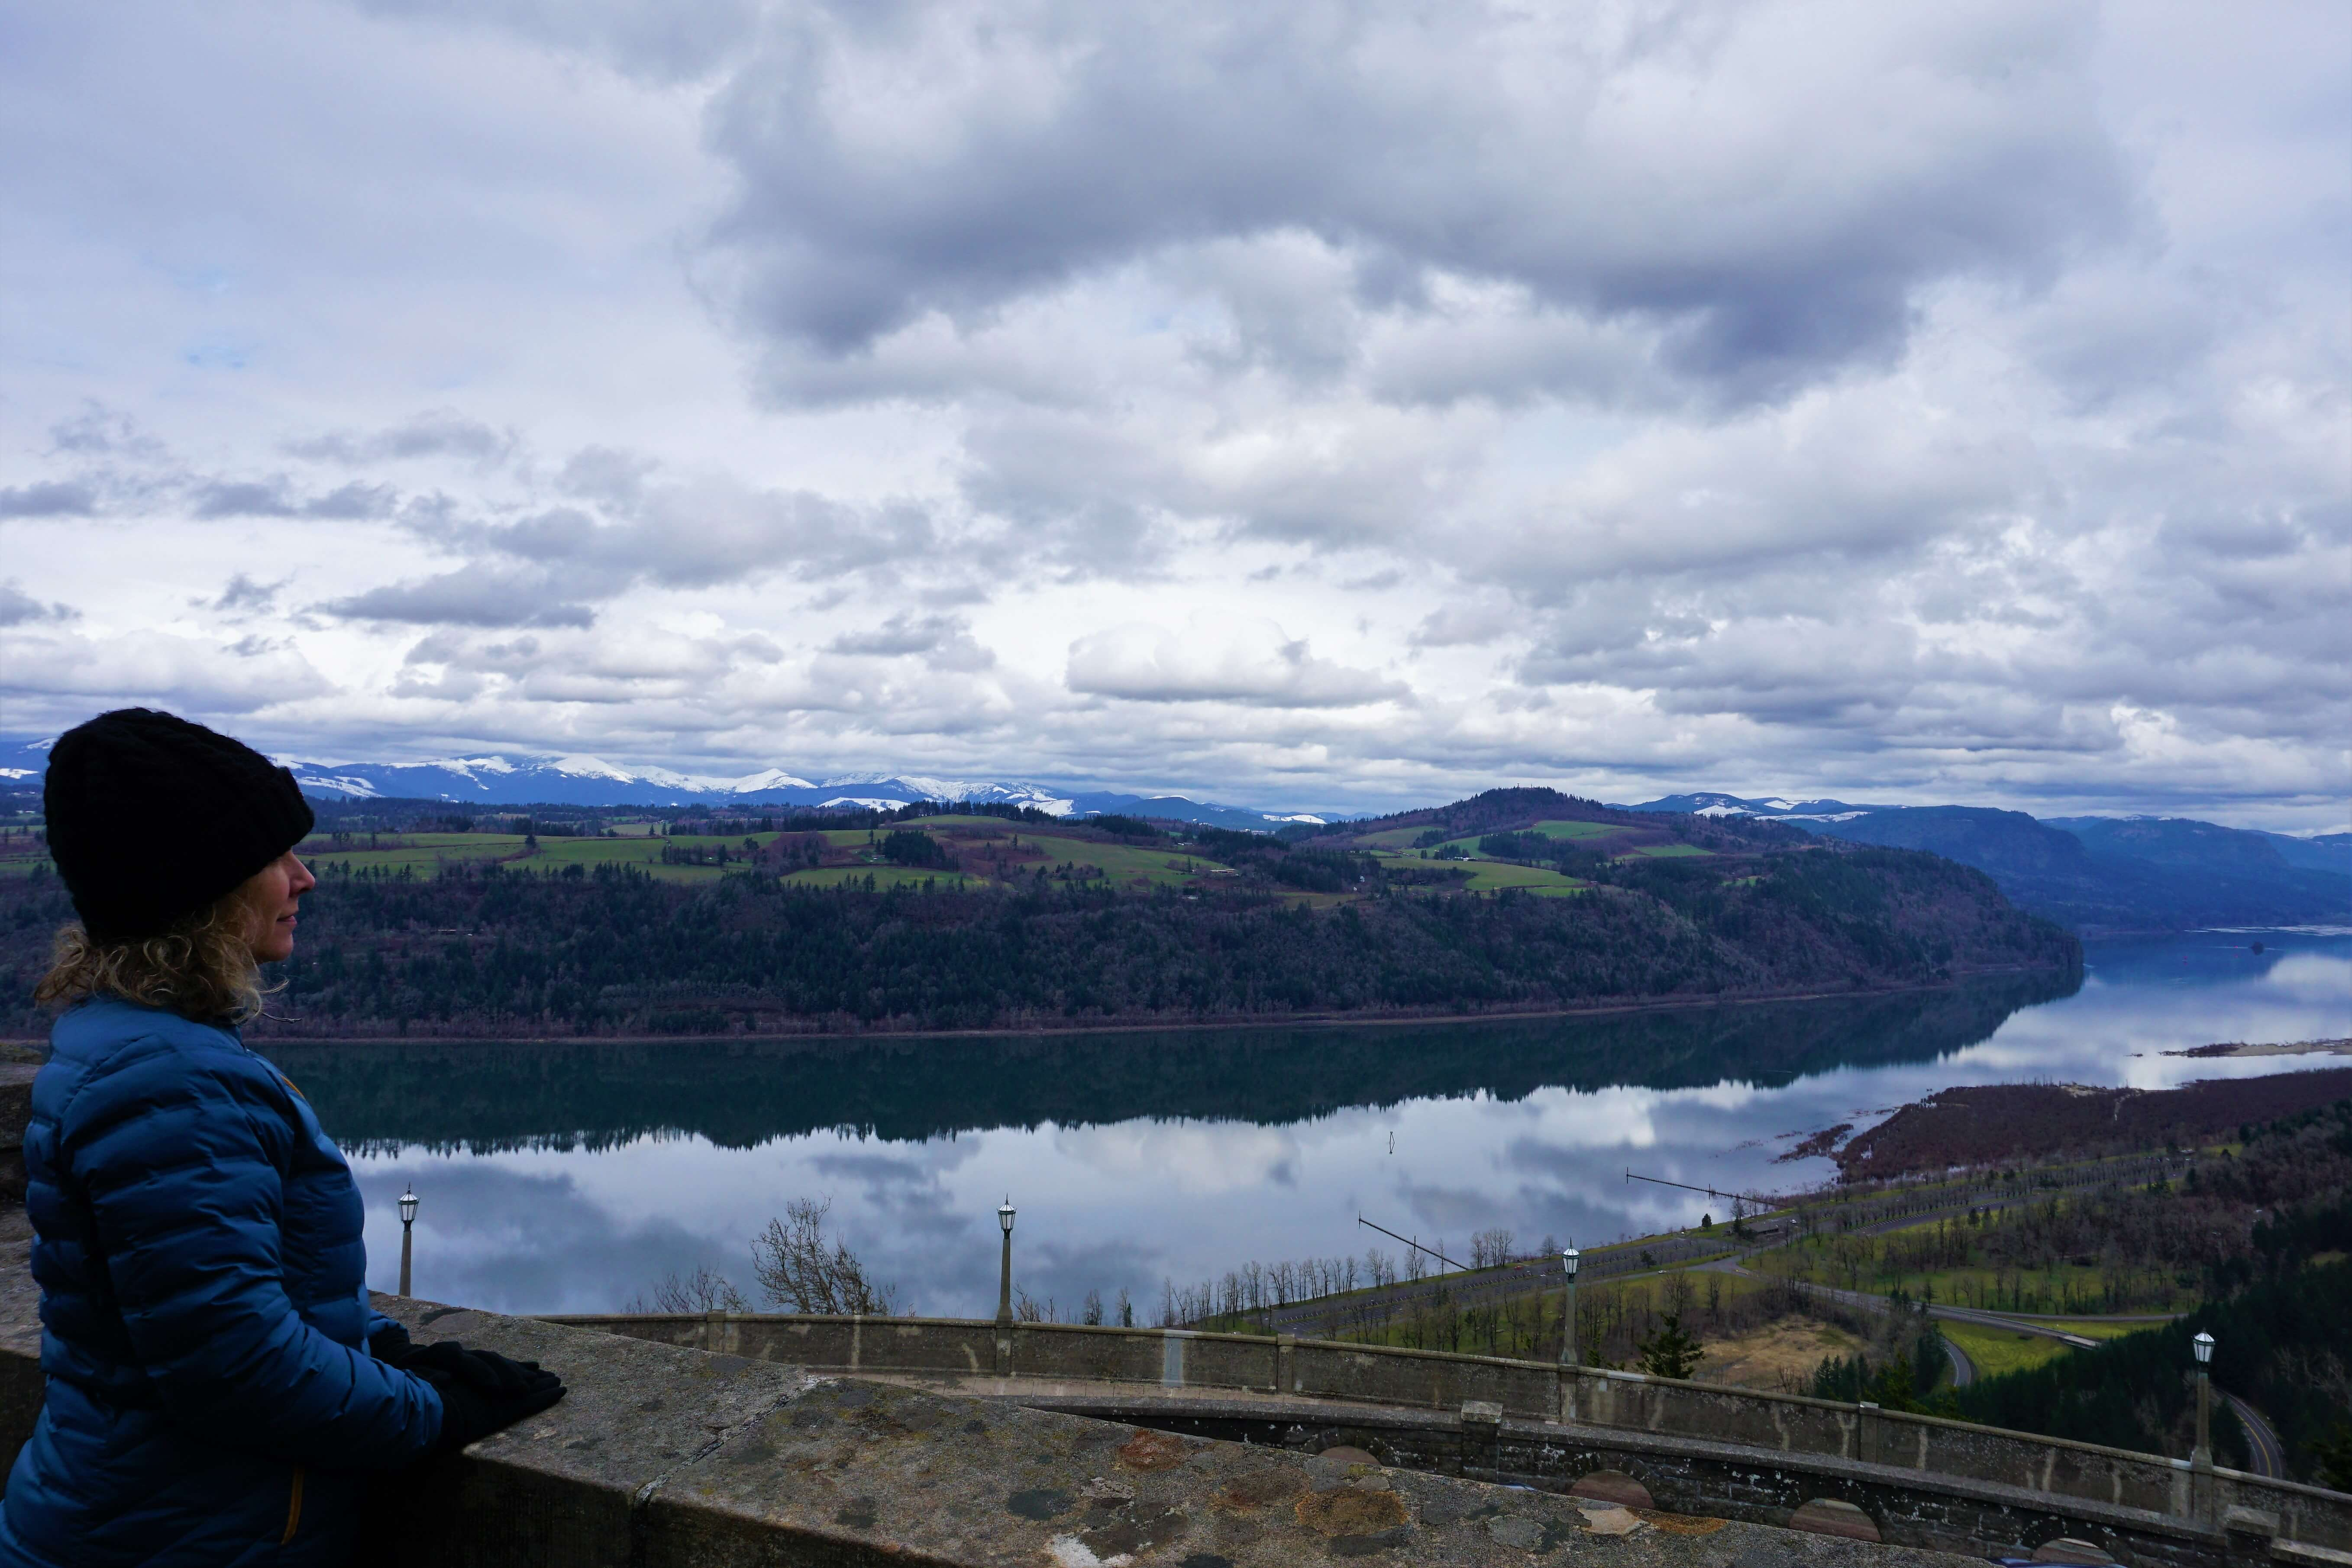 Wendy enjoying the Crown Point Overlook in Columbia River Gorge